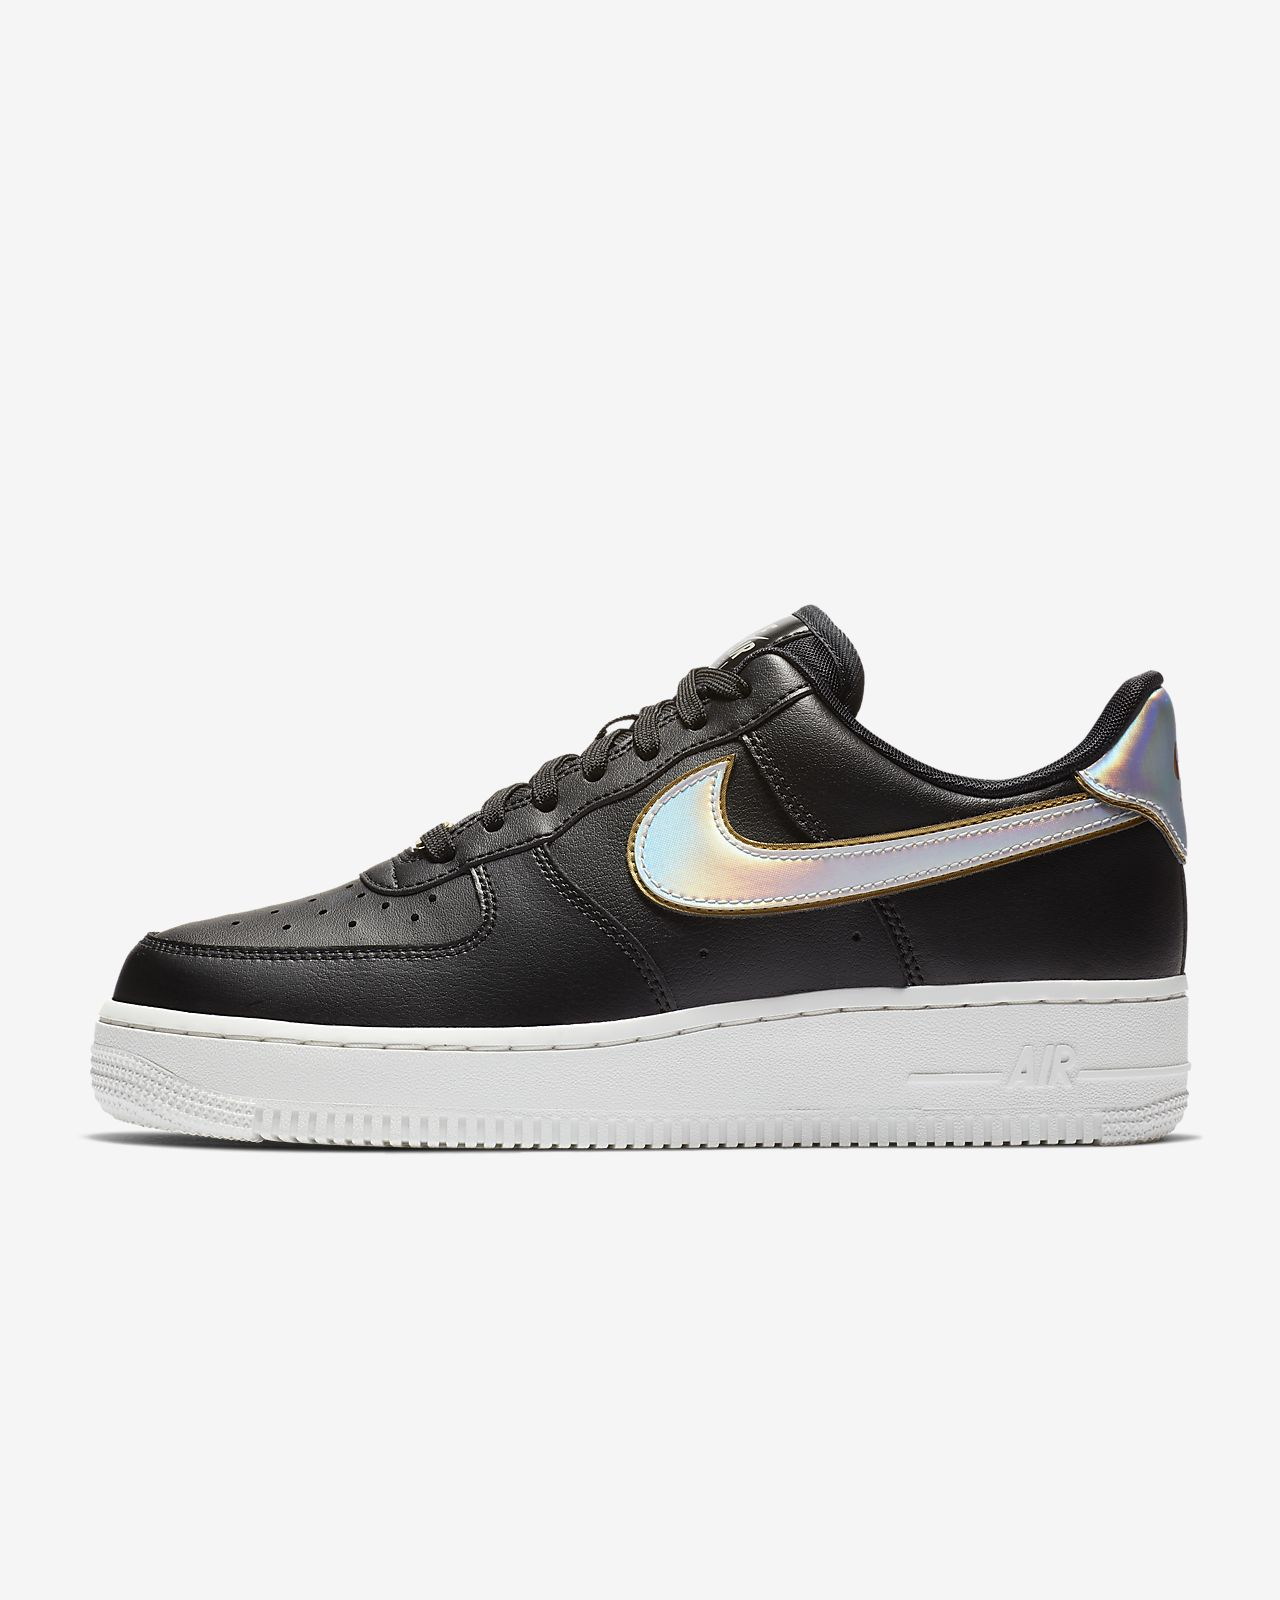 8c3a0d9f361 Nike Air Force 1  07 Metallic Women s Shoe. Nike.com GB